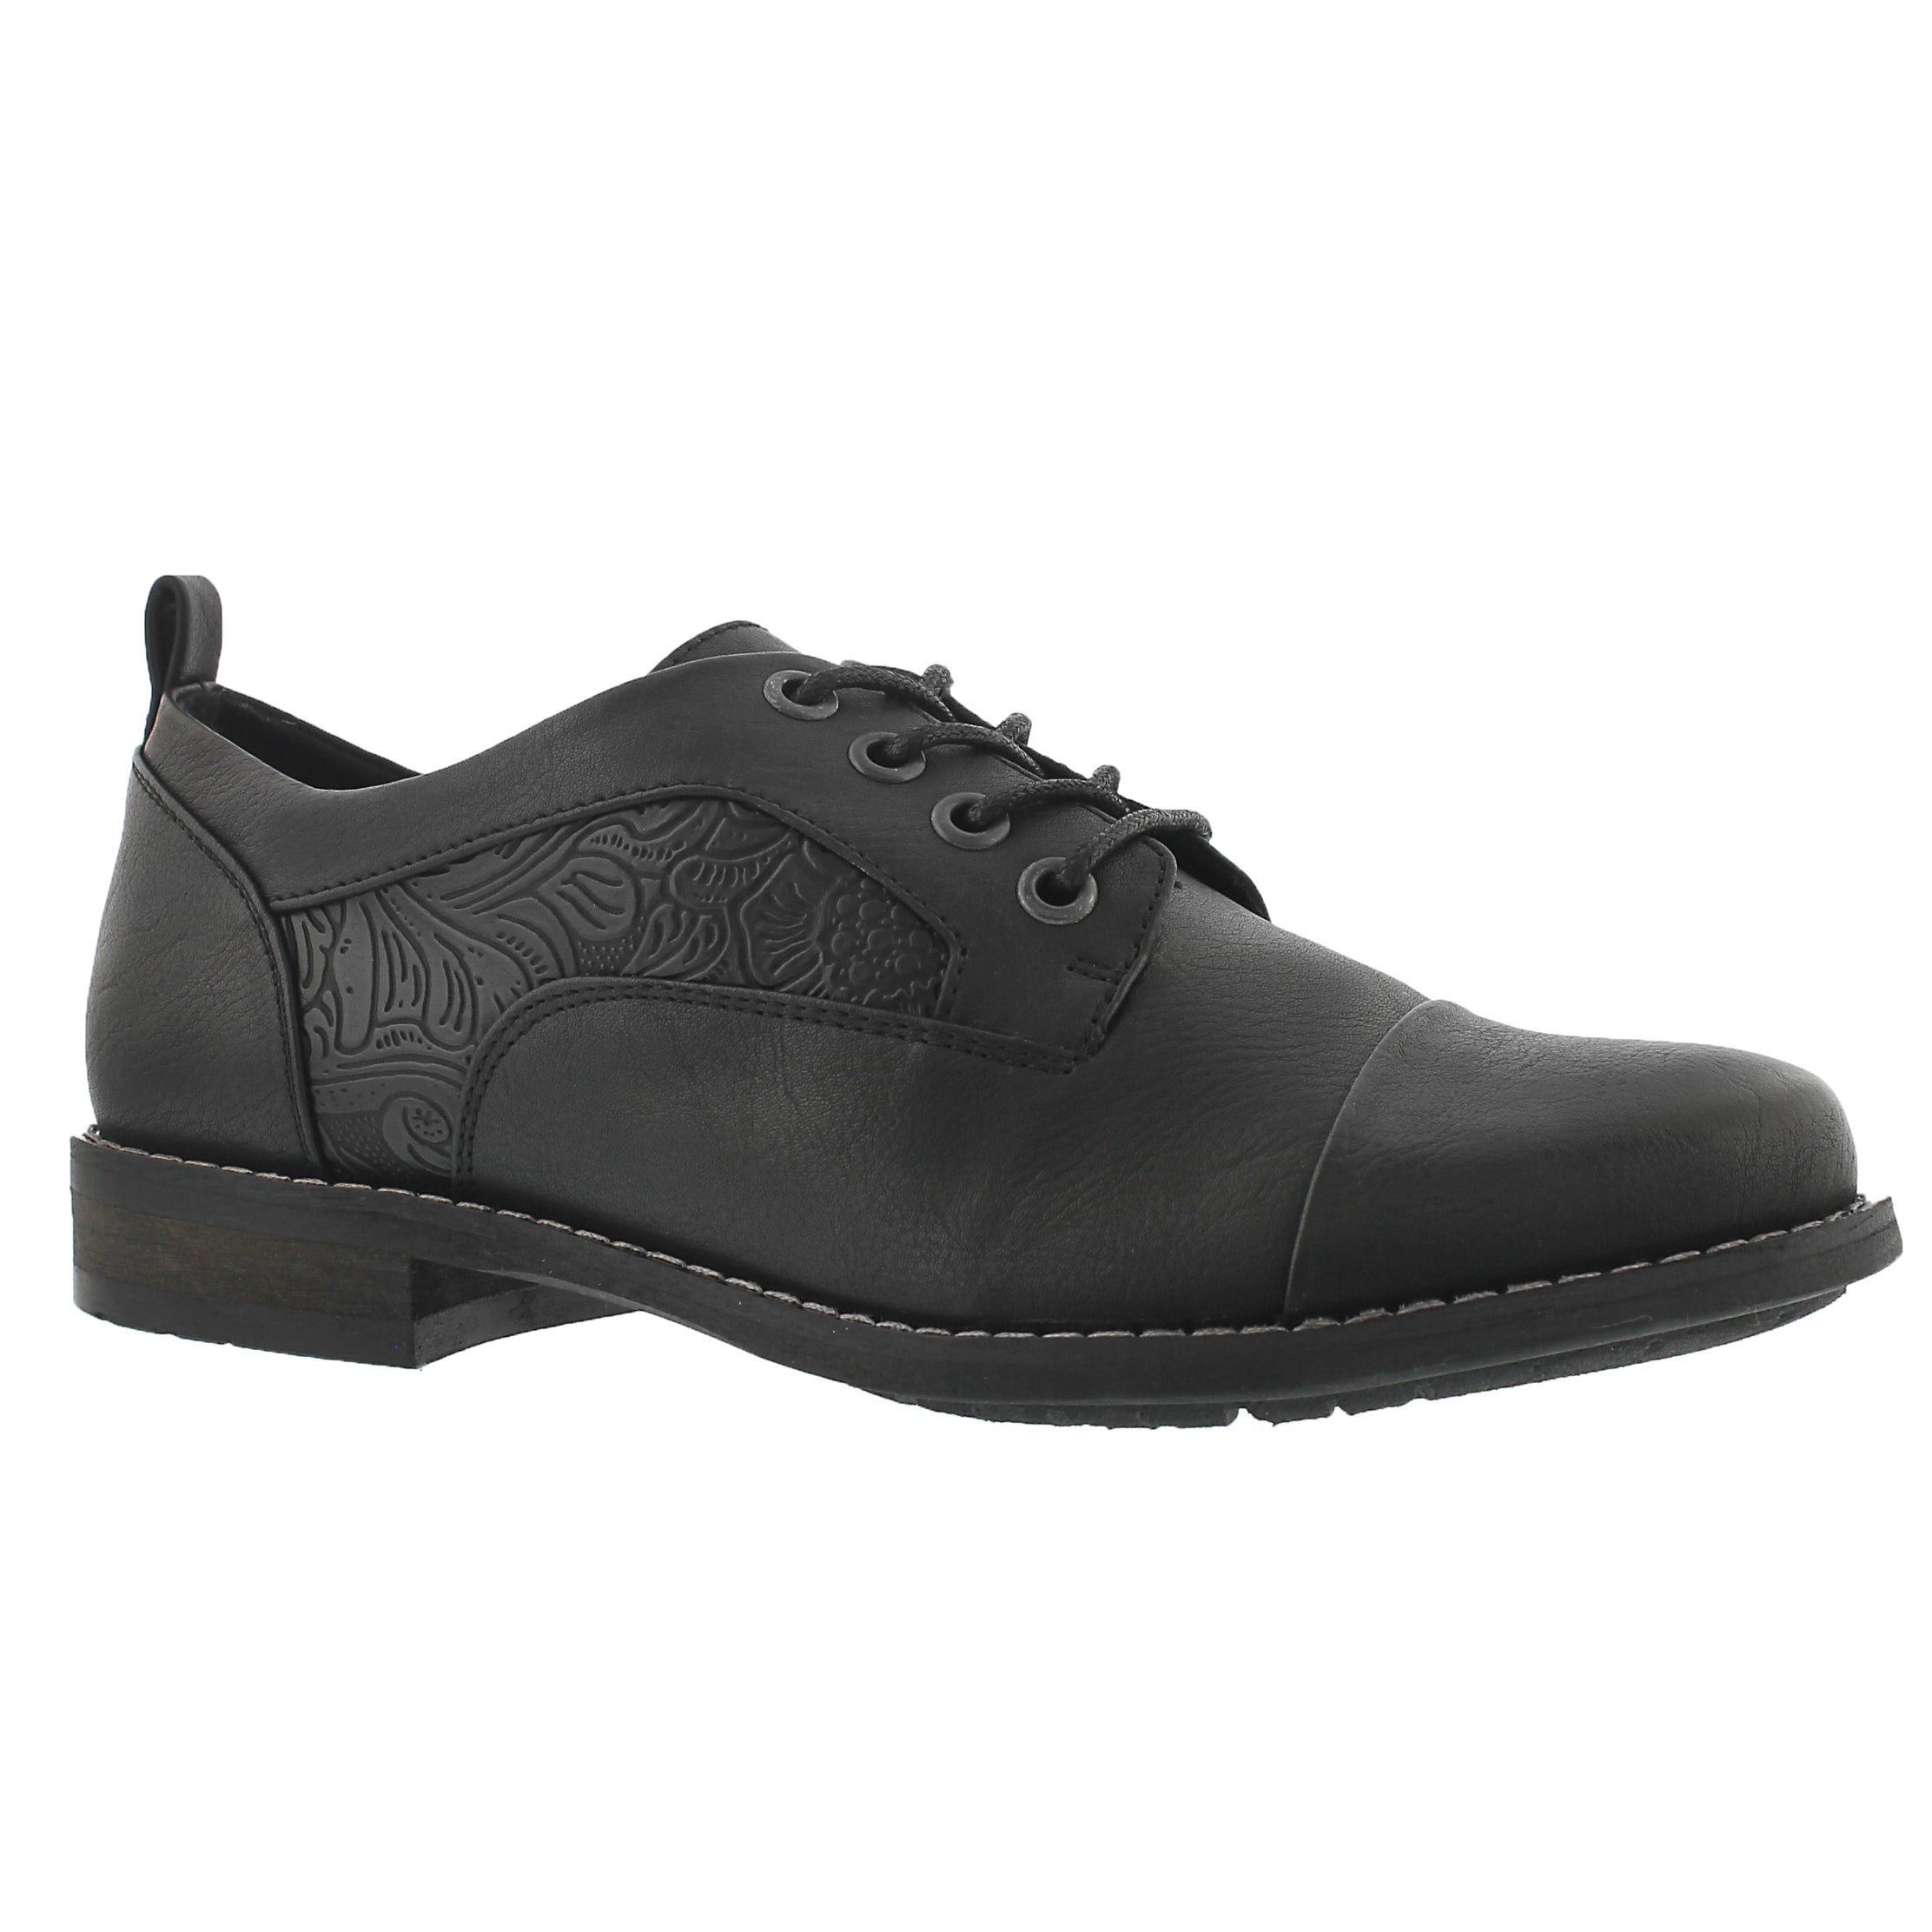 Lds Blanchette black lace up oxford